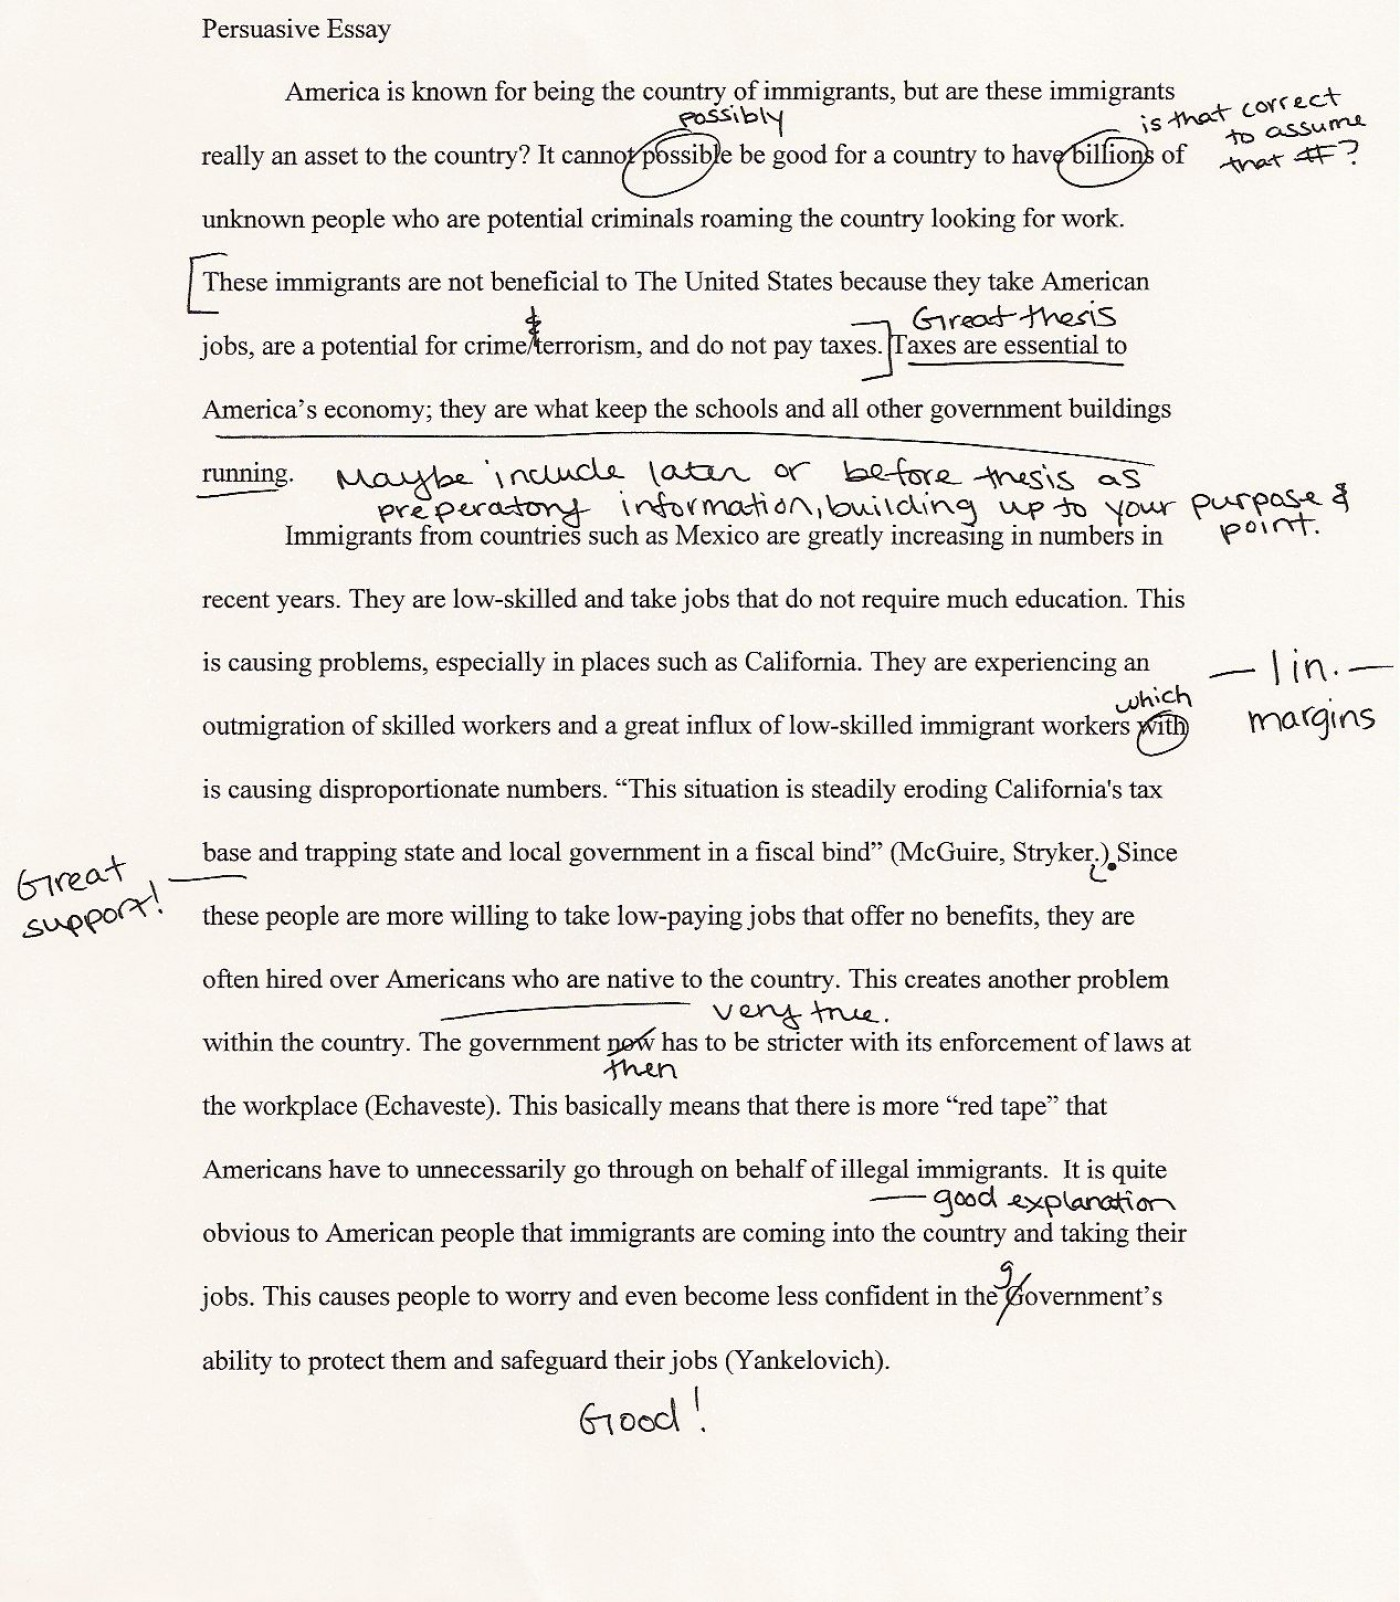 002 Argumentative Research Dreaded Paper Ideas For College Outline Topics 1400